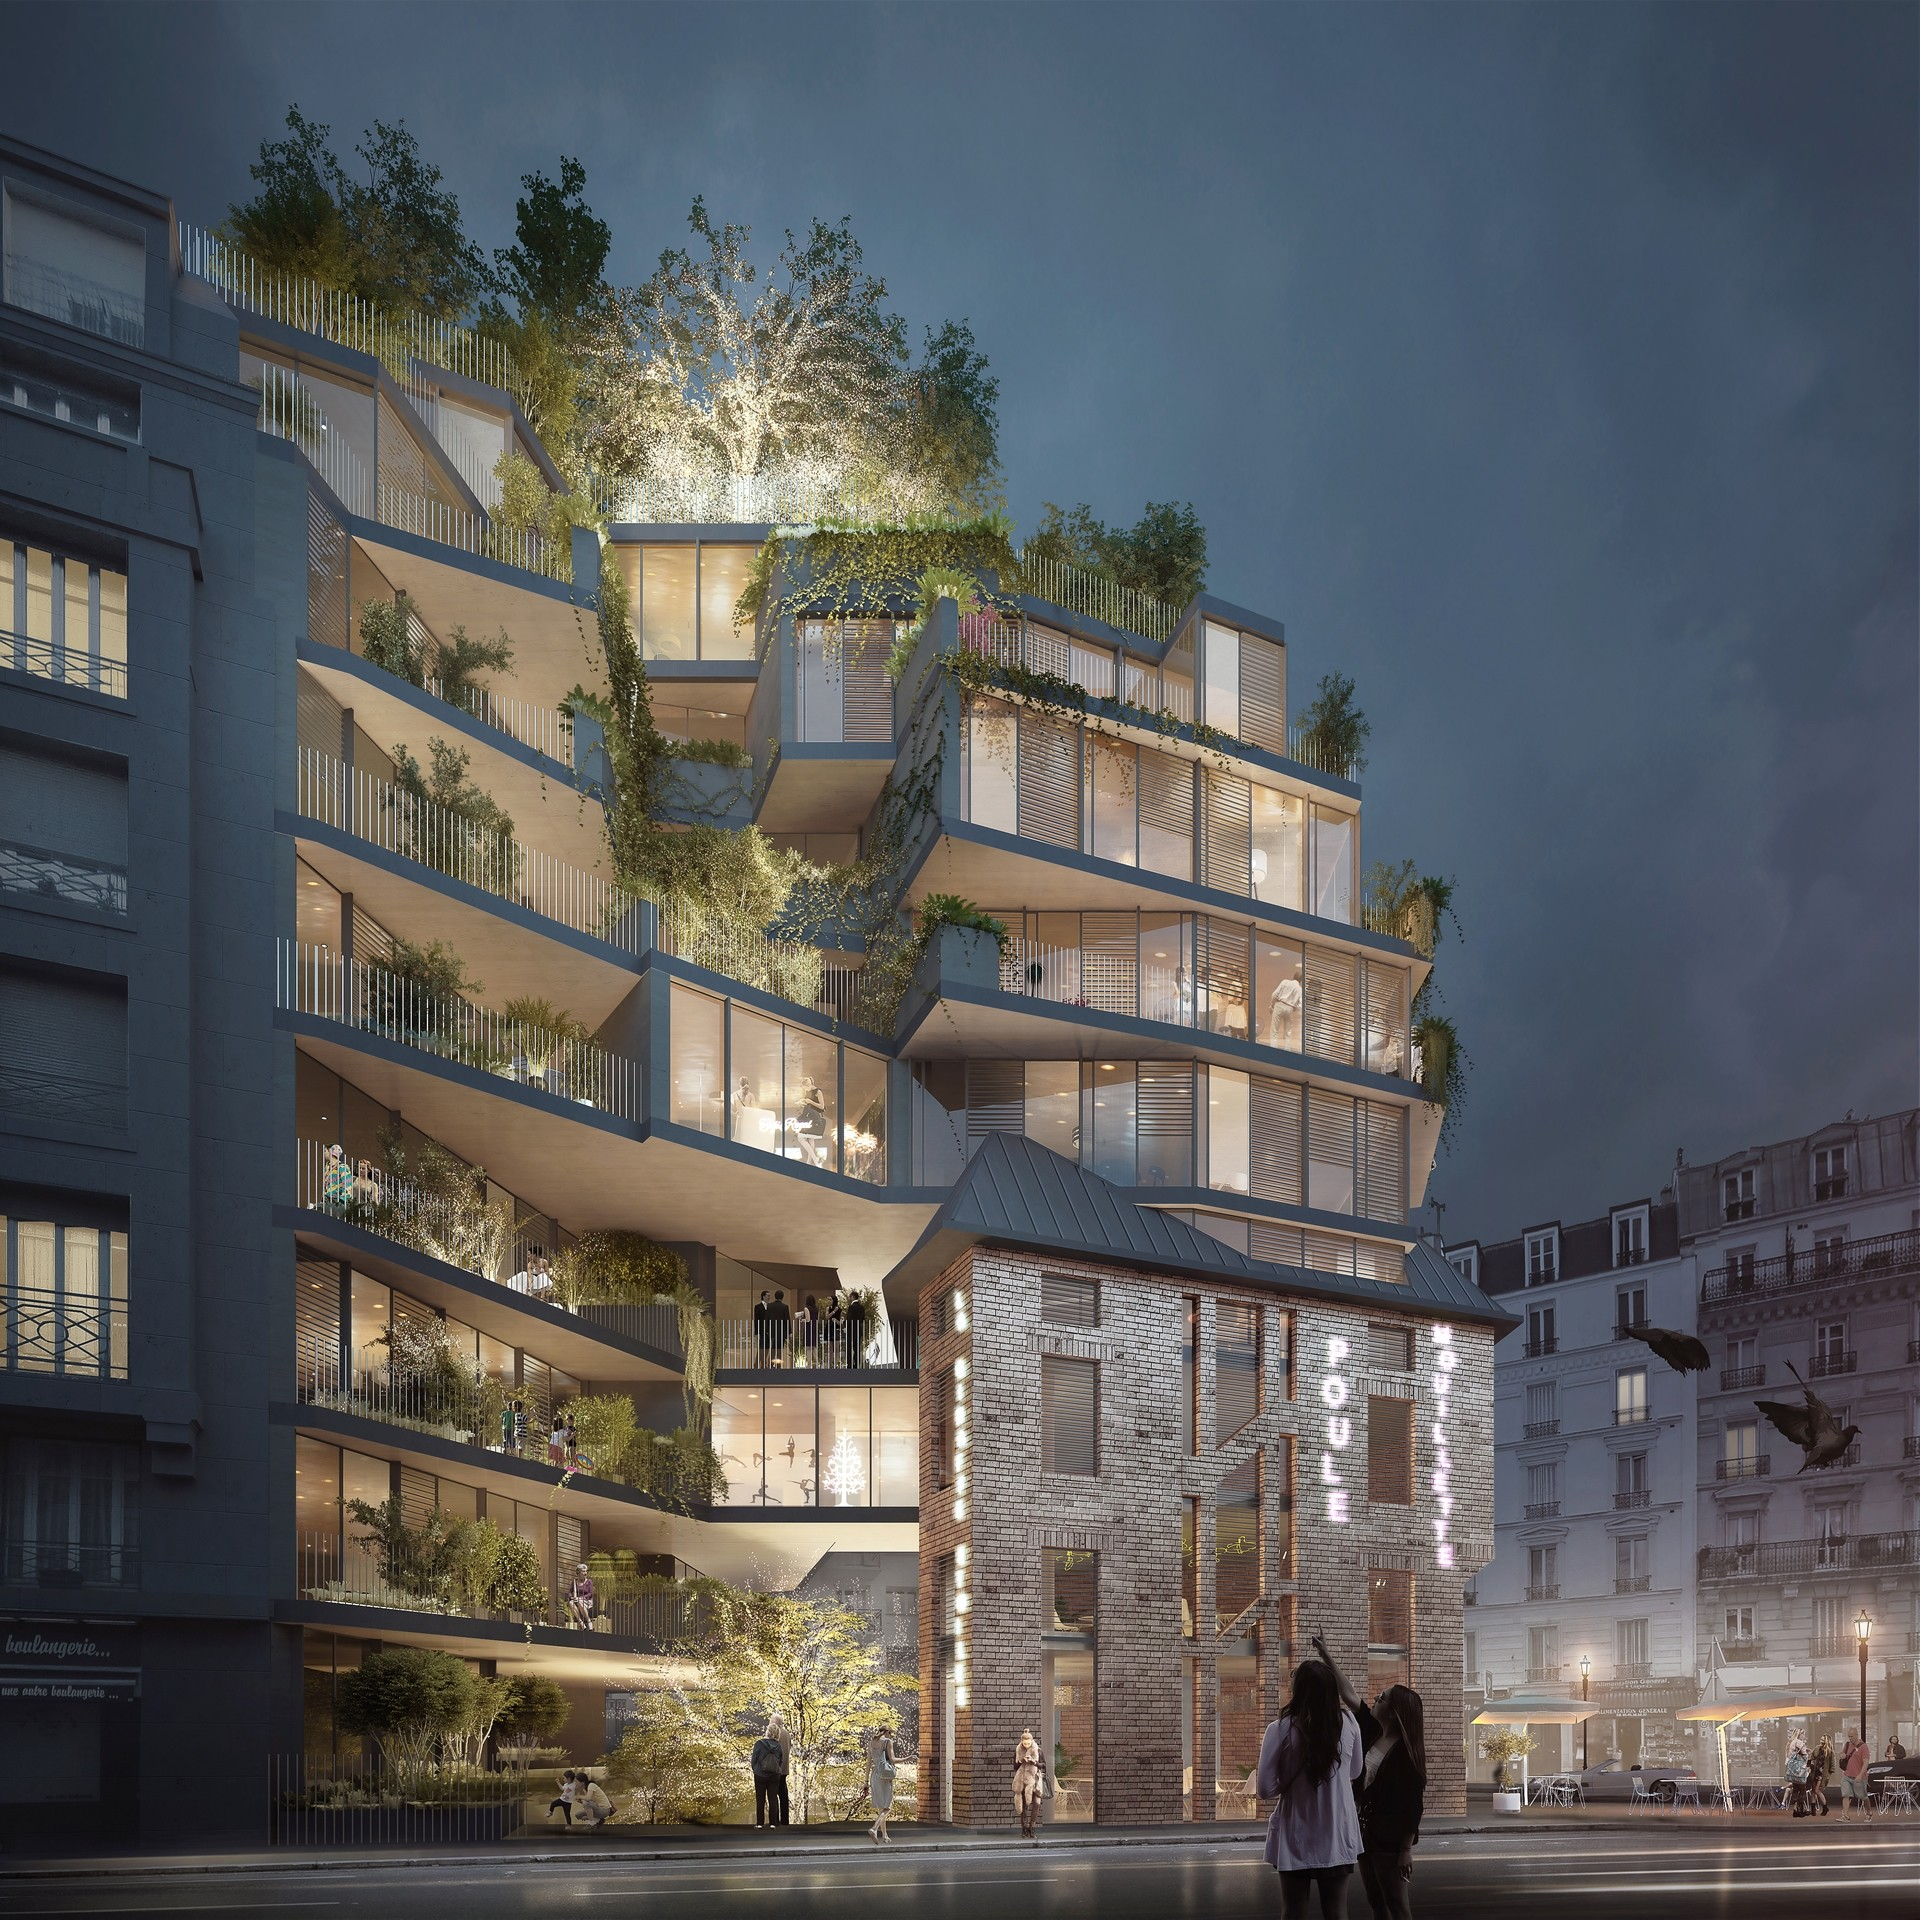 Paris (75015), Le premier immeuble Nudge, Agence Catherine Dormoy Architectes